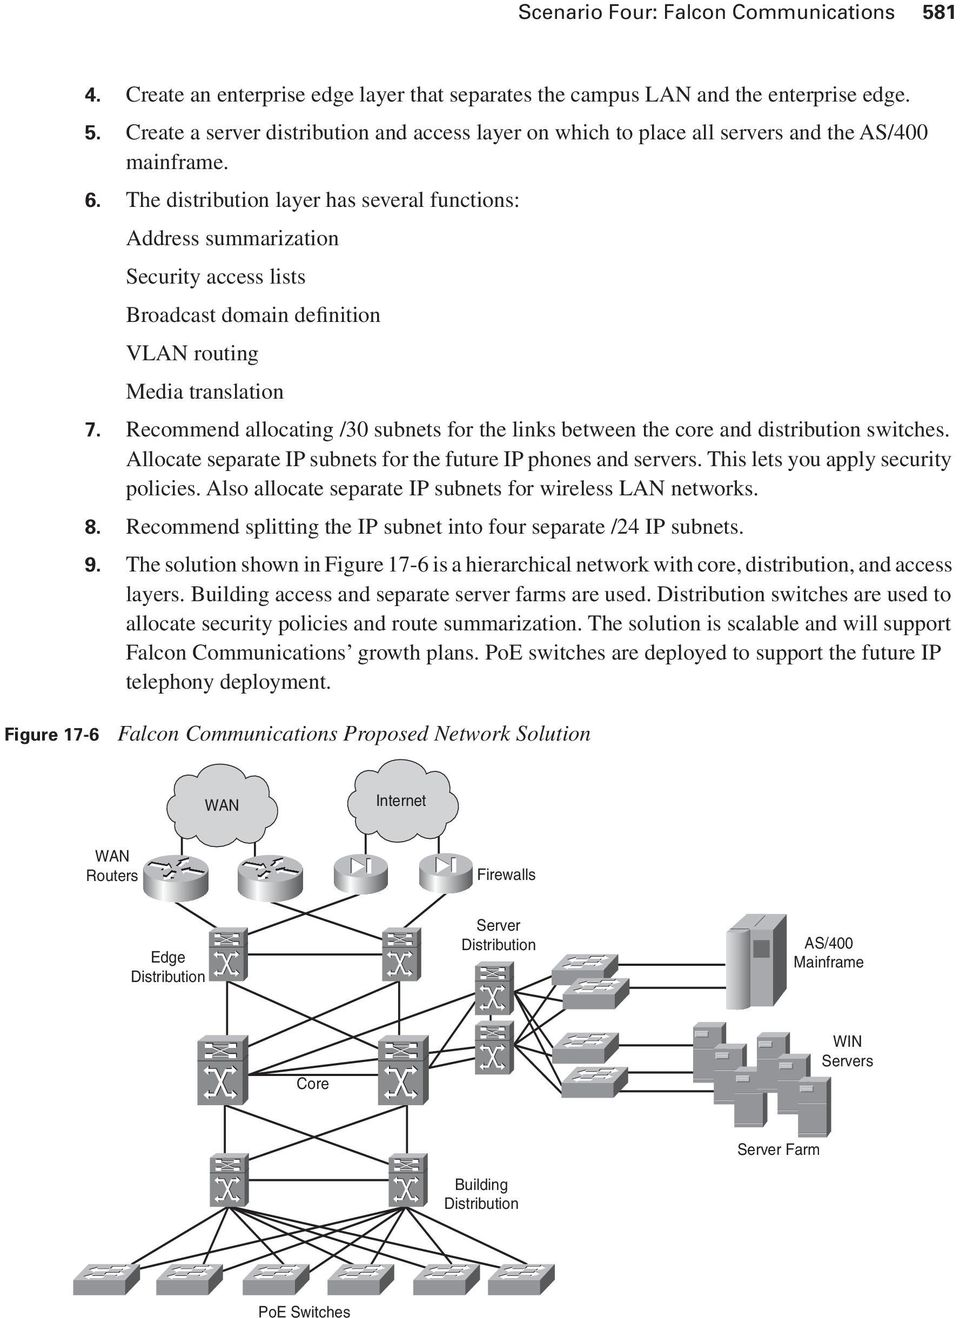 This Chapter Covers Four Comprehensive Scenarios That Draw On Wireless Campus Network Diagram Recommend Allocating 30 Subnets For The Links Between Core And Distribution Switches Allocate